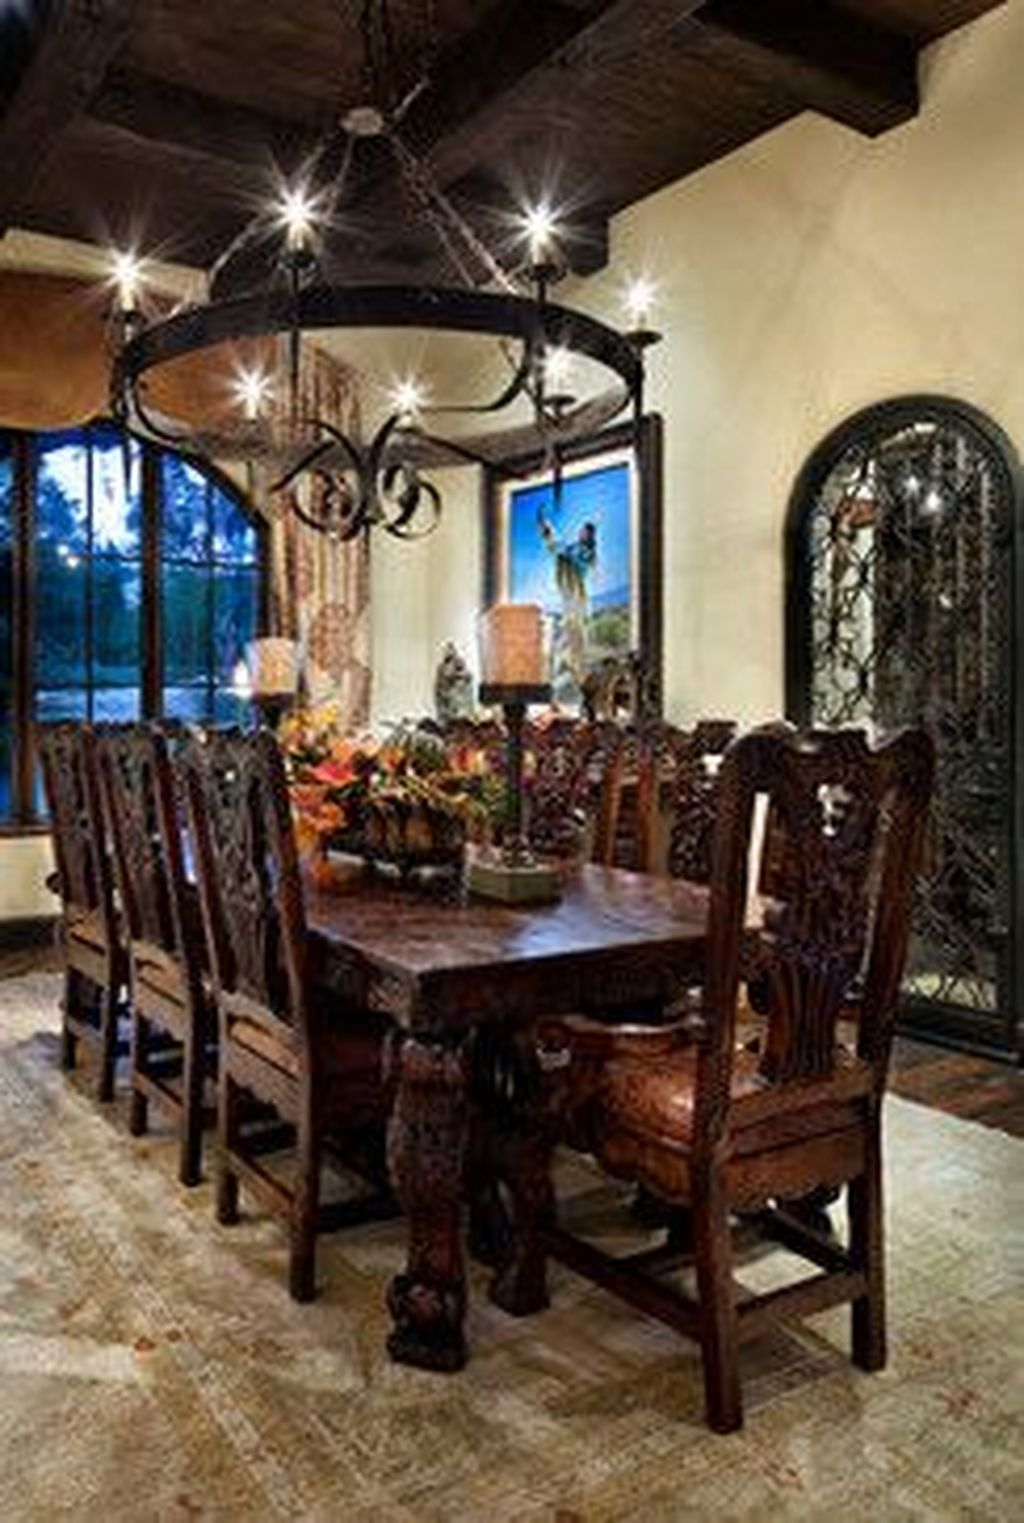 Popular Rustic Farmhouse Style Ideas For Dining Room Decor 25